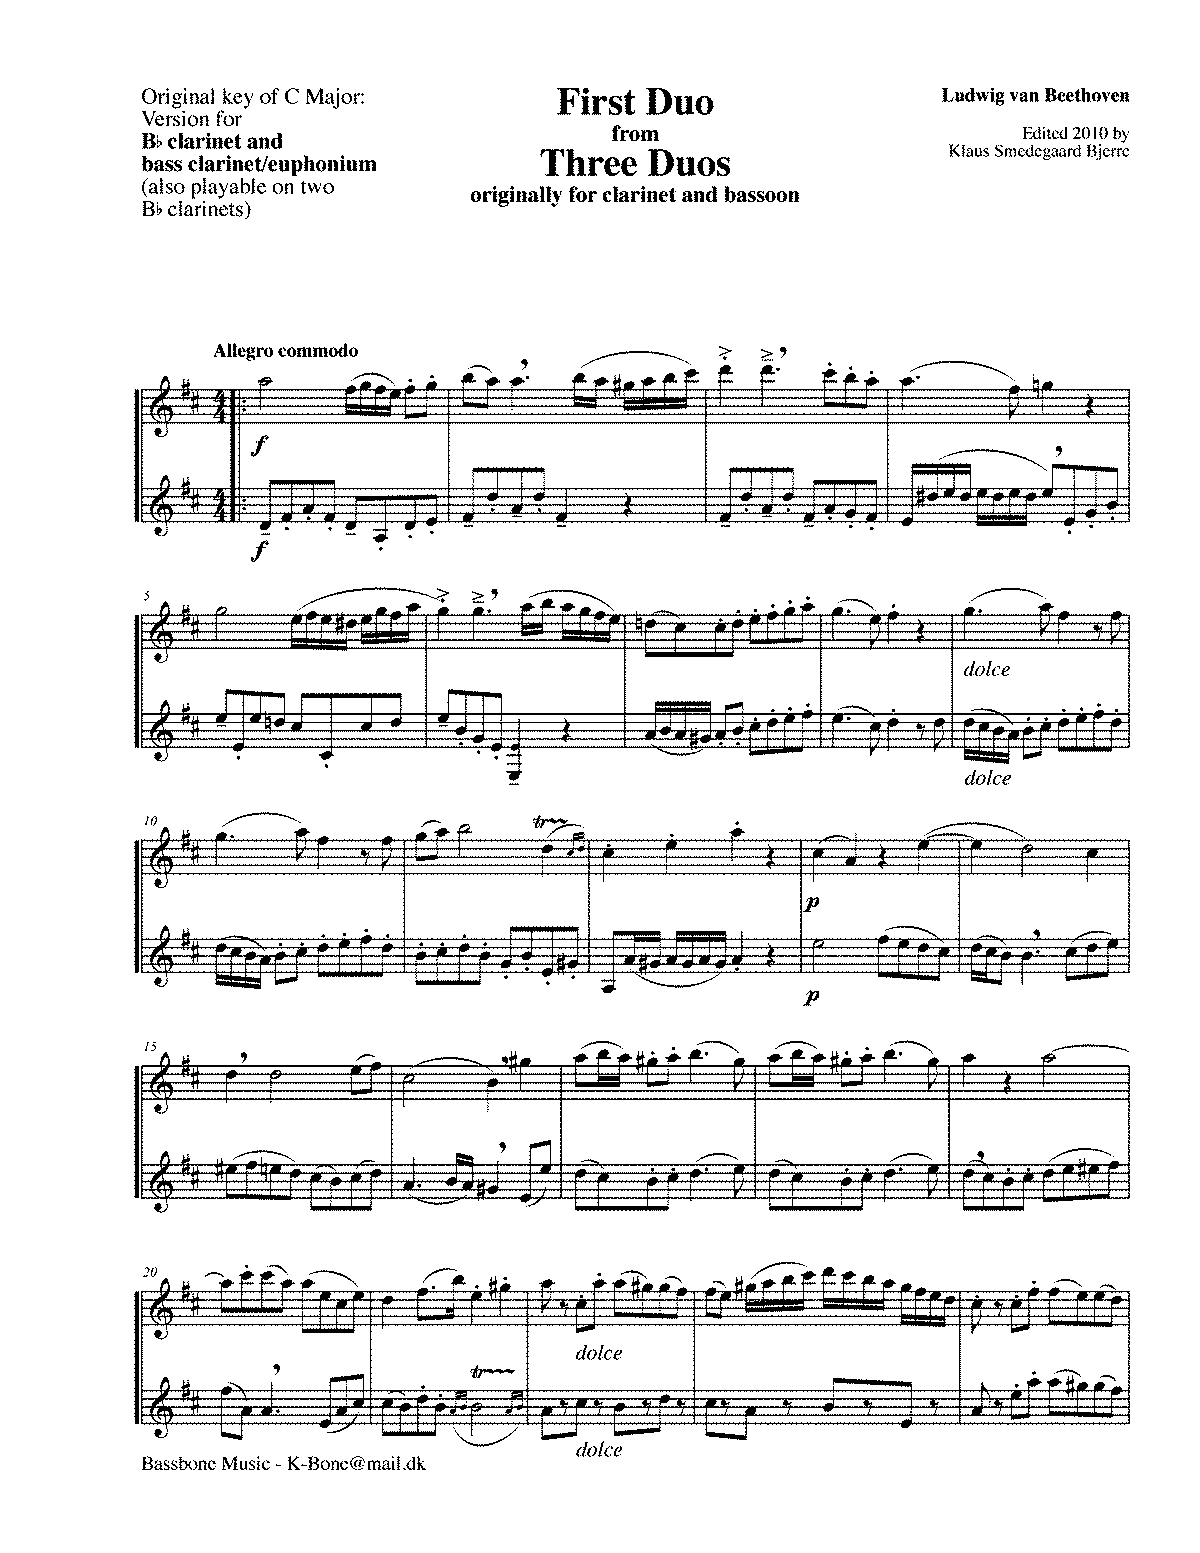 WIMA.3fed-Beethoven-Duet-1-C-major-for-Bb-clarinet&bass-clar-euph.pdf